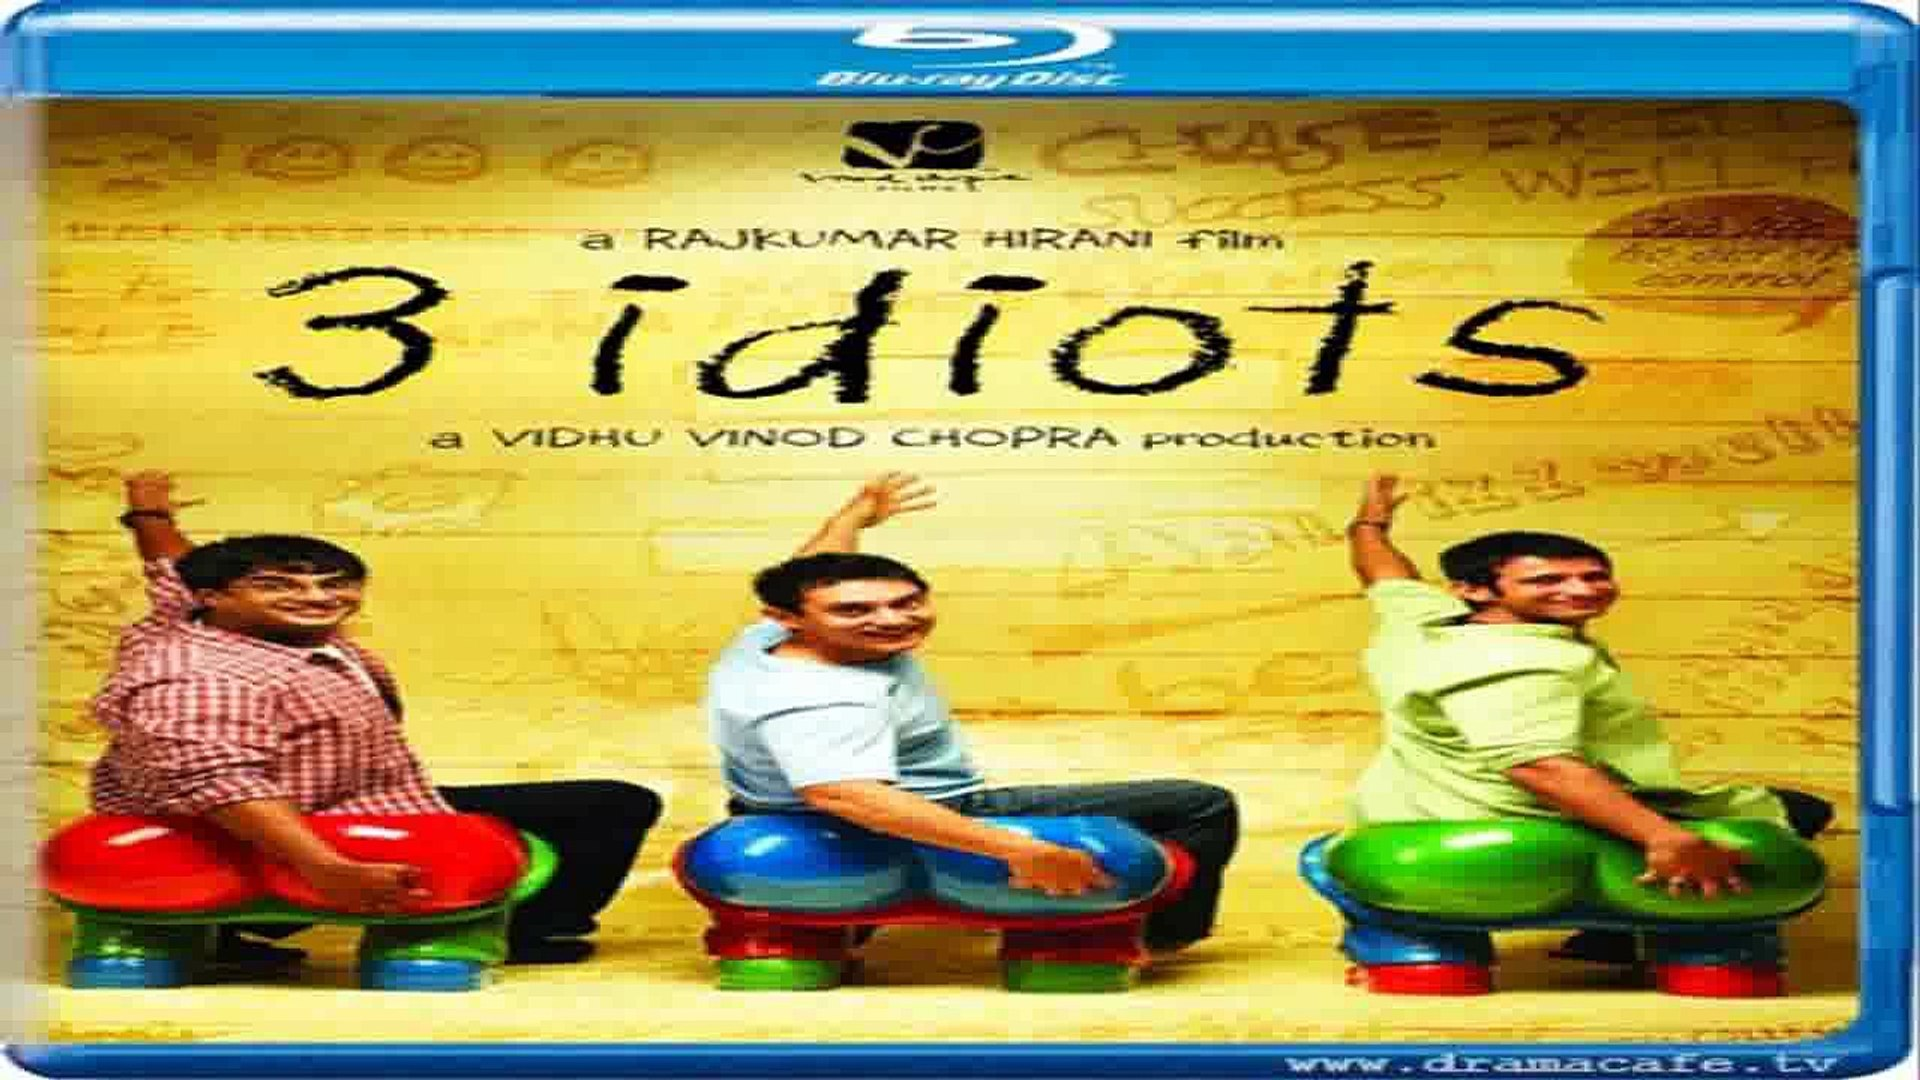 3 idiots full movie watch online free hd